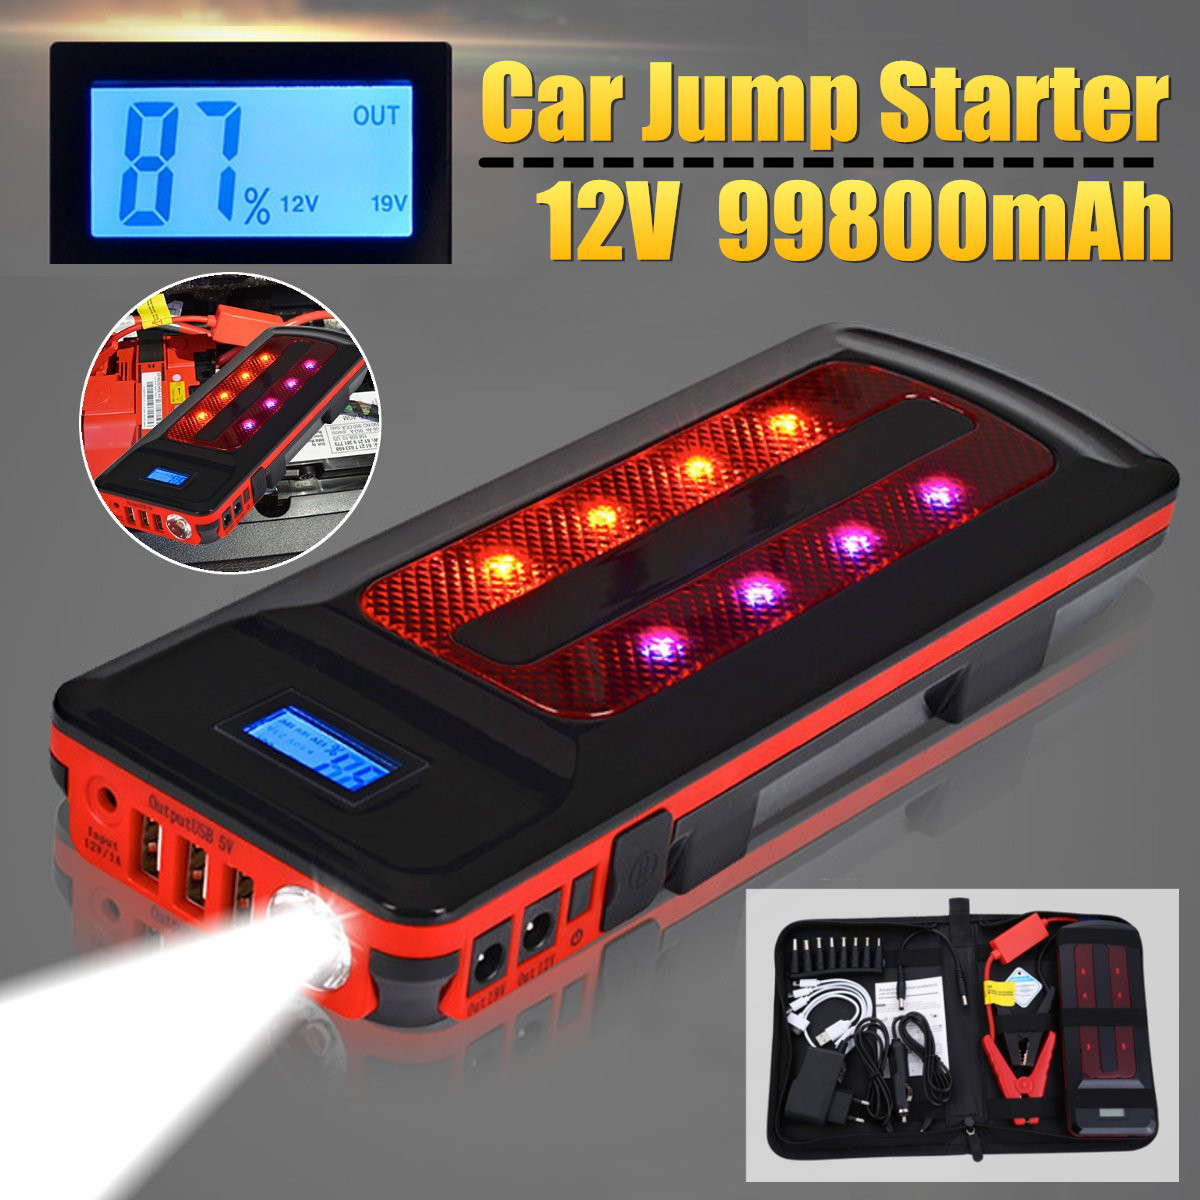 12V 99800mAh Portable Emergency Battery Charger Car Jump Starter Smart Clip Power Bank Starting Light Bar US/UK/AU/EU jump starter car styling uk us eu au 88800mah multi functional car jump starter emergency charger booster power bank battery